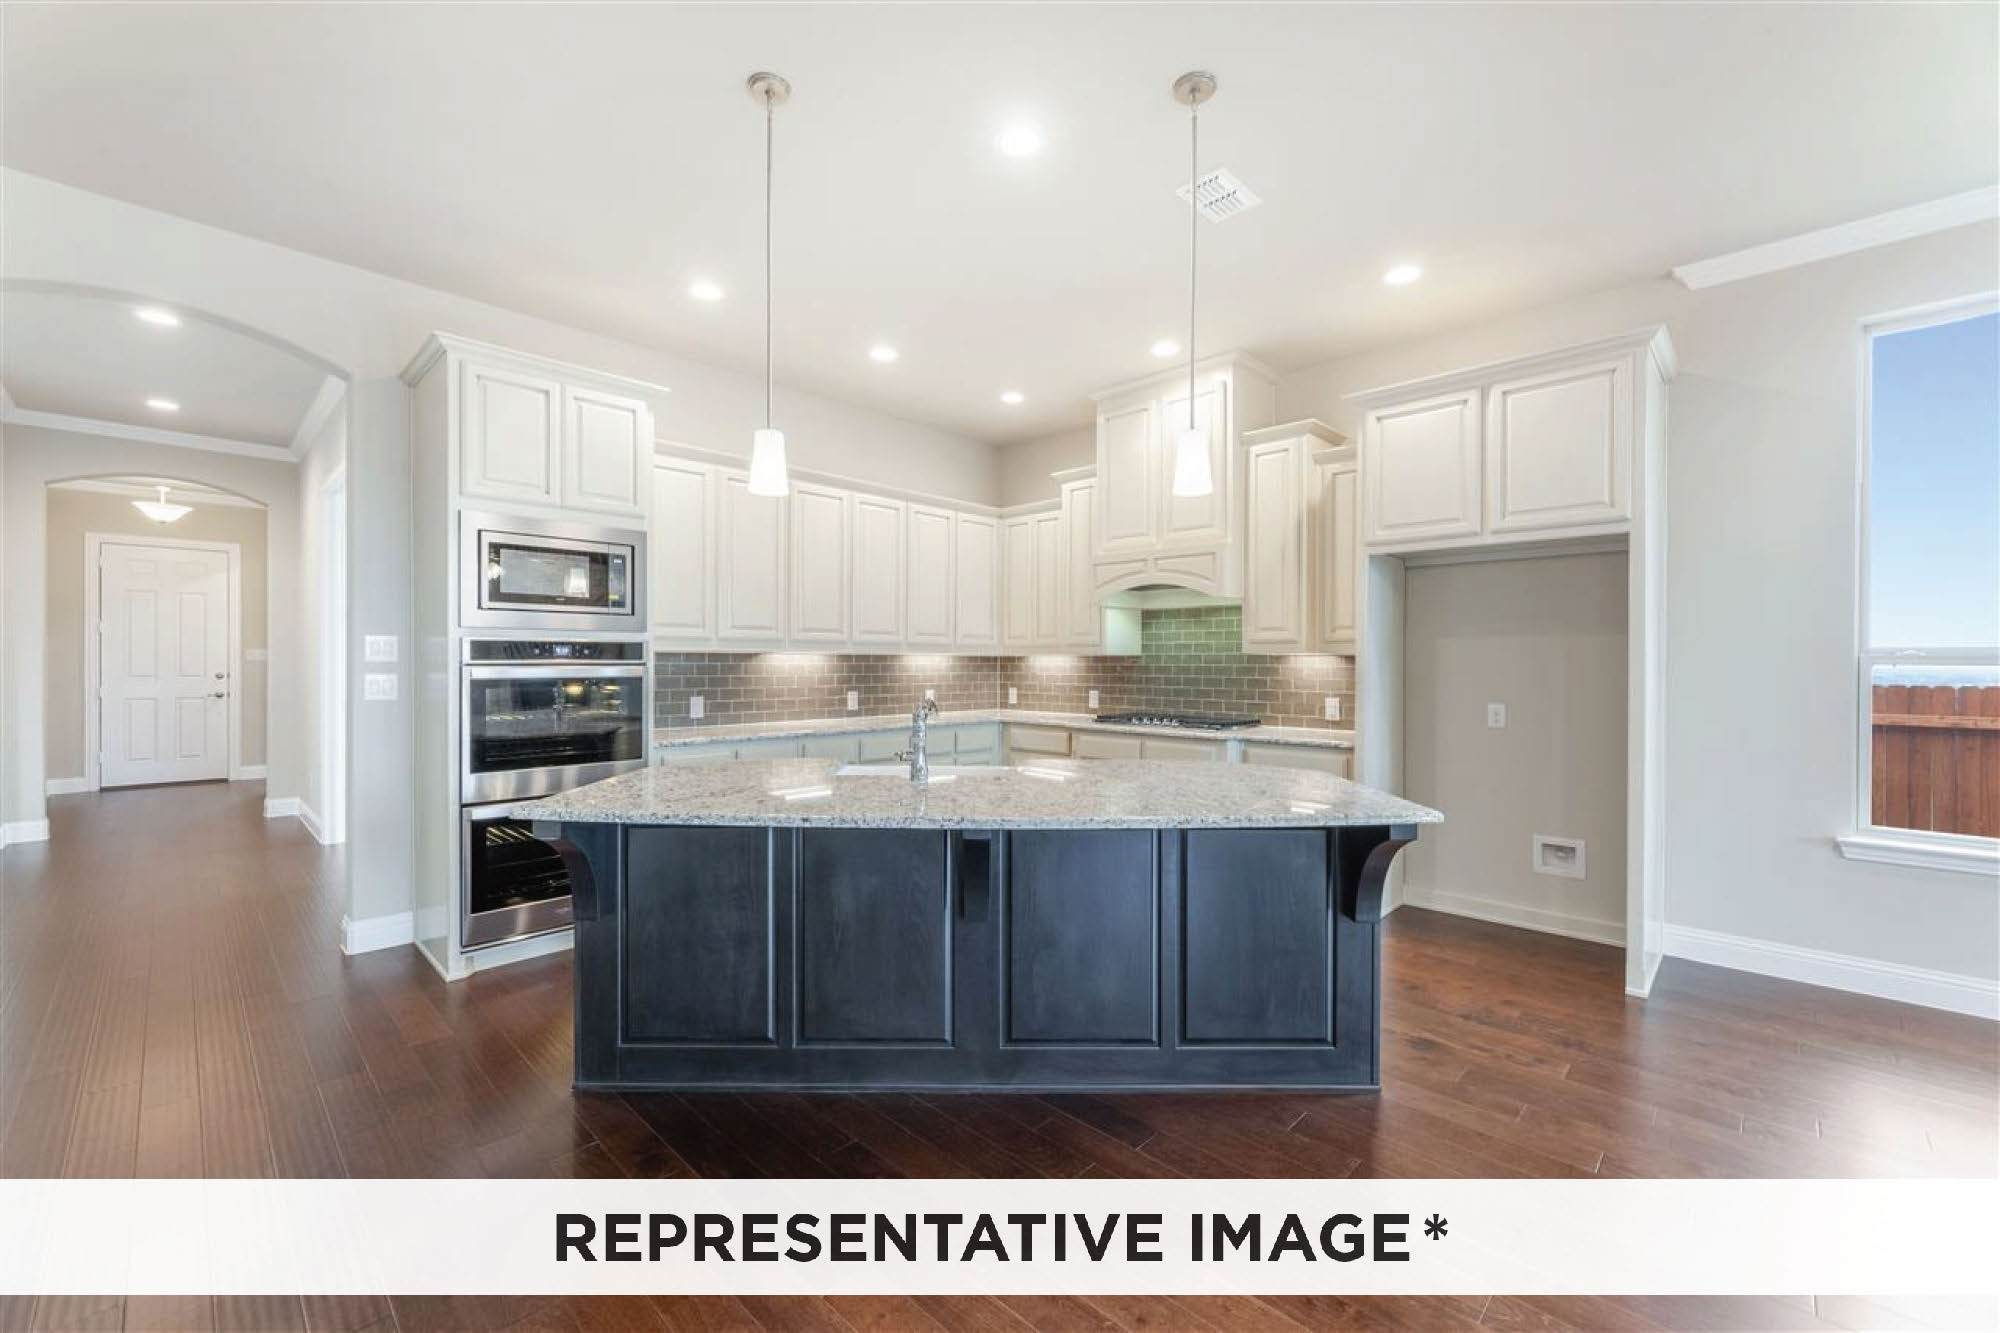 Kitchen featured in the Adagio By Rendition Homes in Dallas, TX